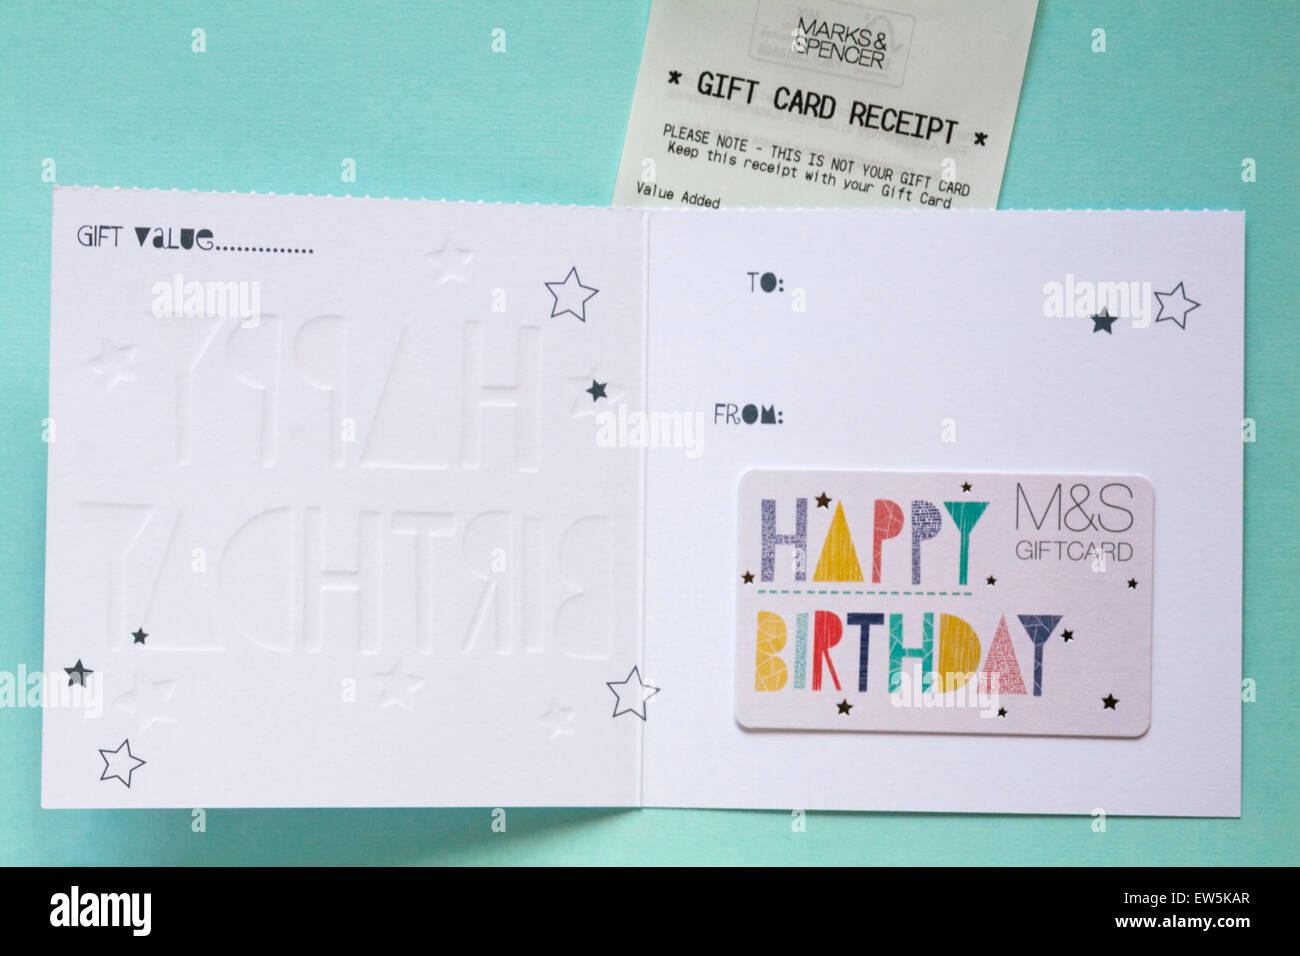 MS Happy Birthday Giftcard With Gift Card Receipt Set On Pale Blue Green Background